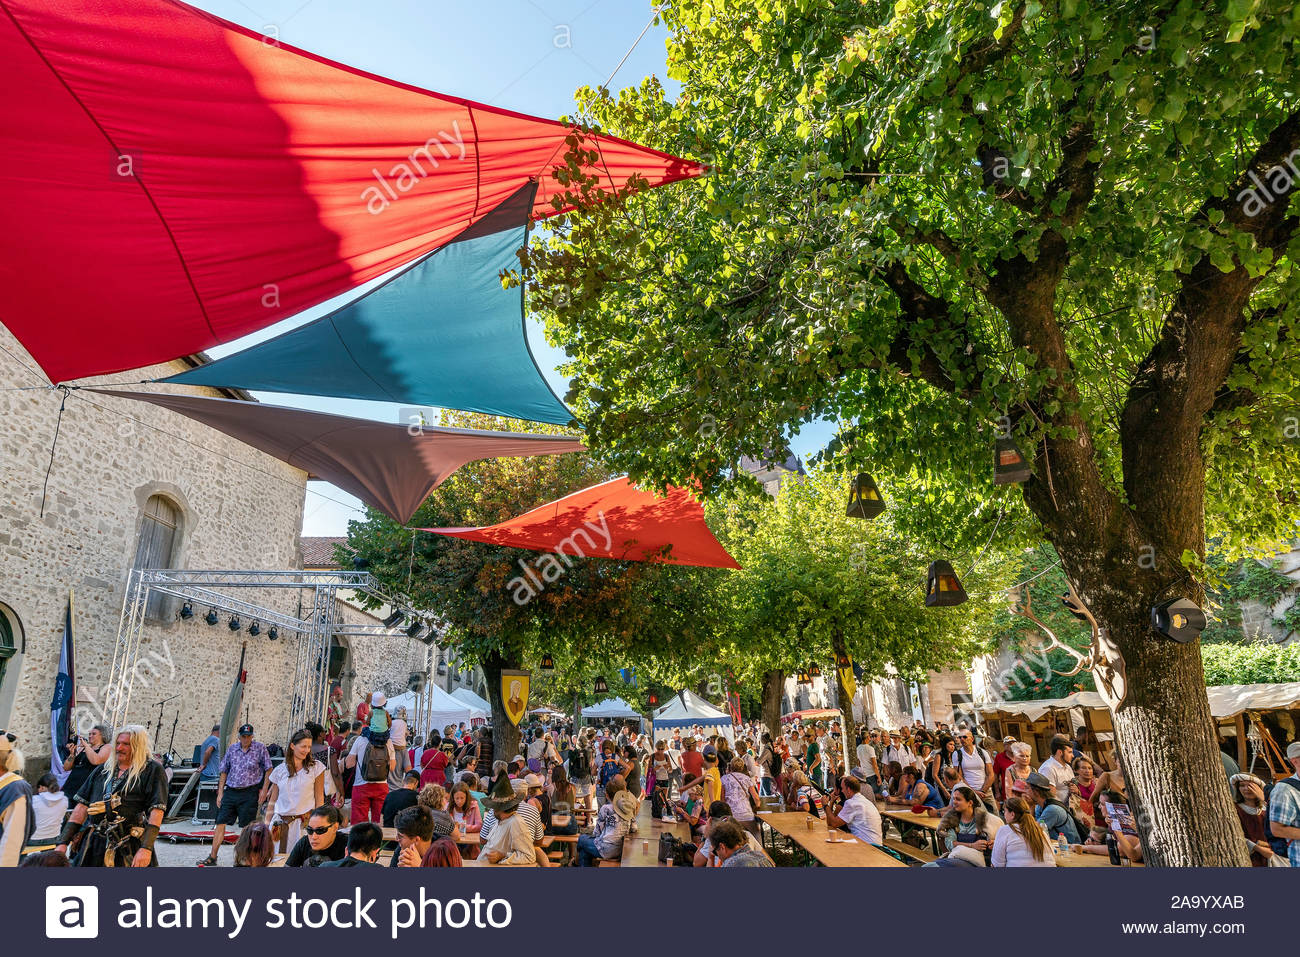 Saint-Antoine-l'Abbaye during the medieval festival which is held every year in August Stock Photo